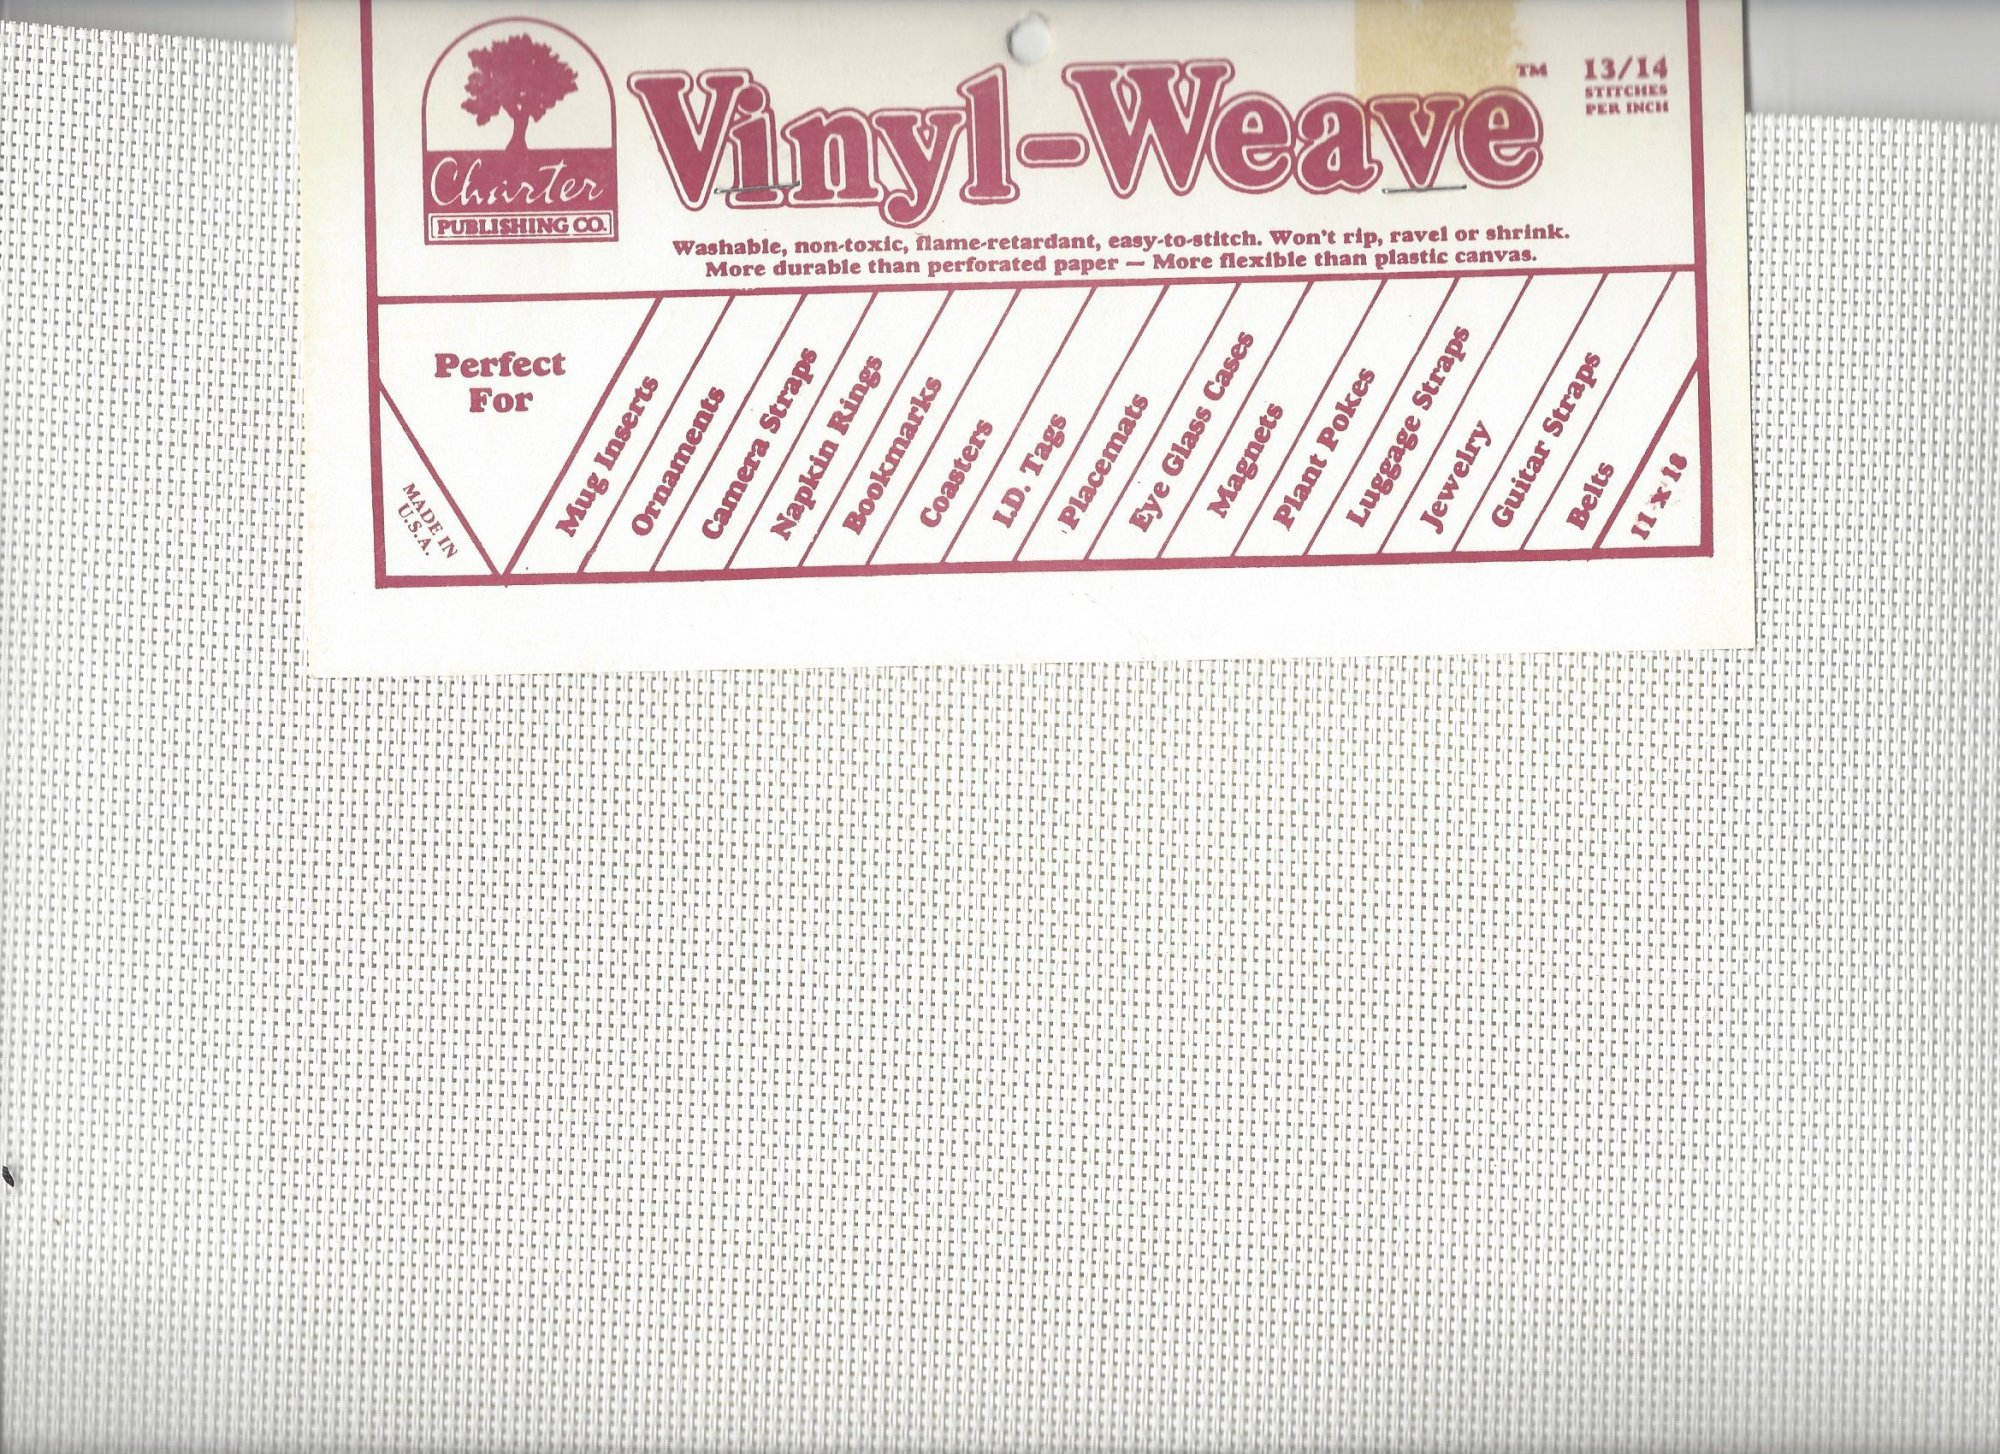 Charter Publishing Vinyl-Weave White with Patterns